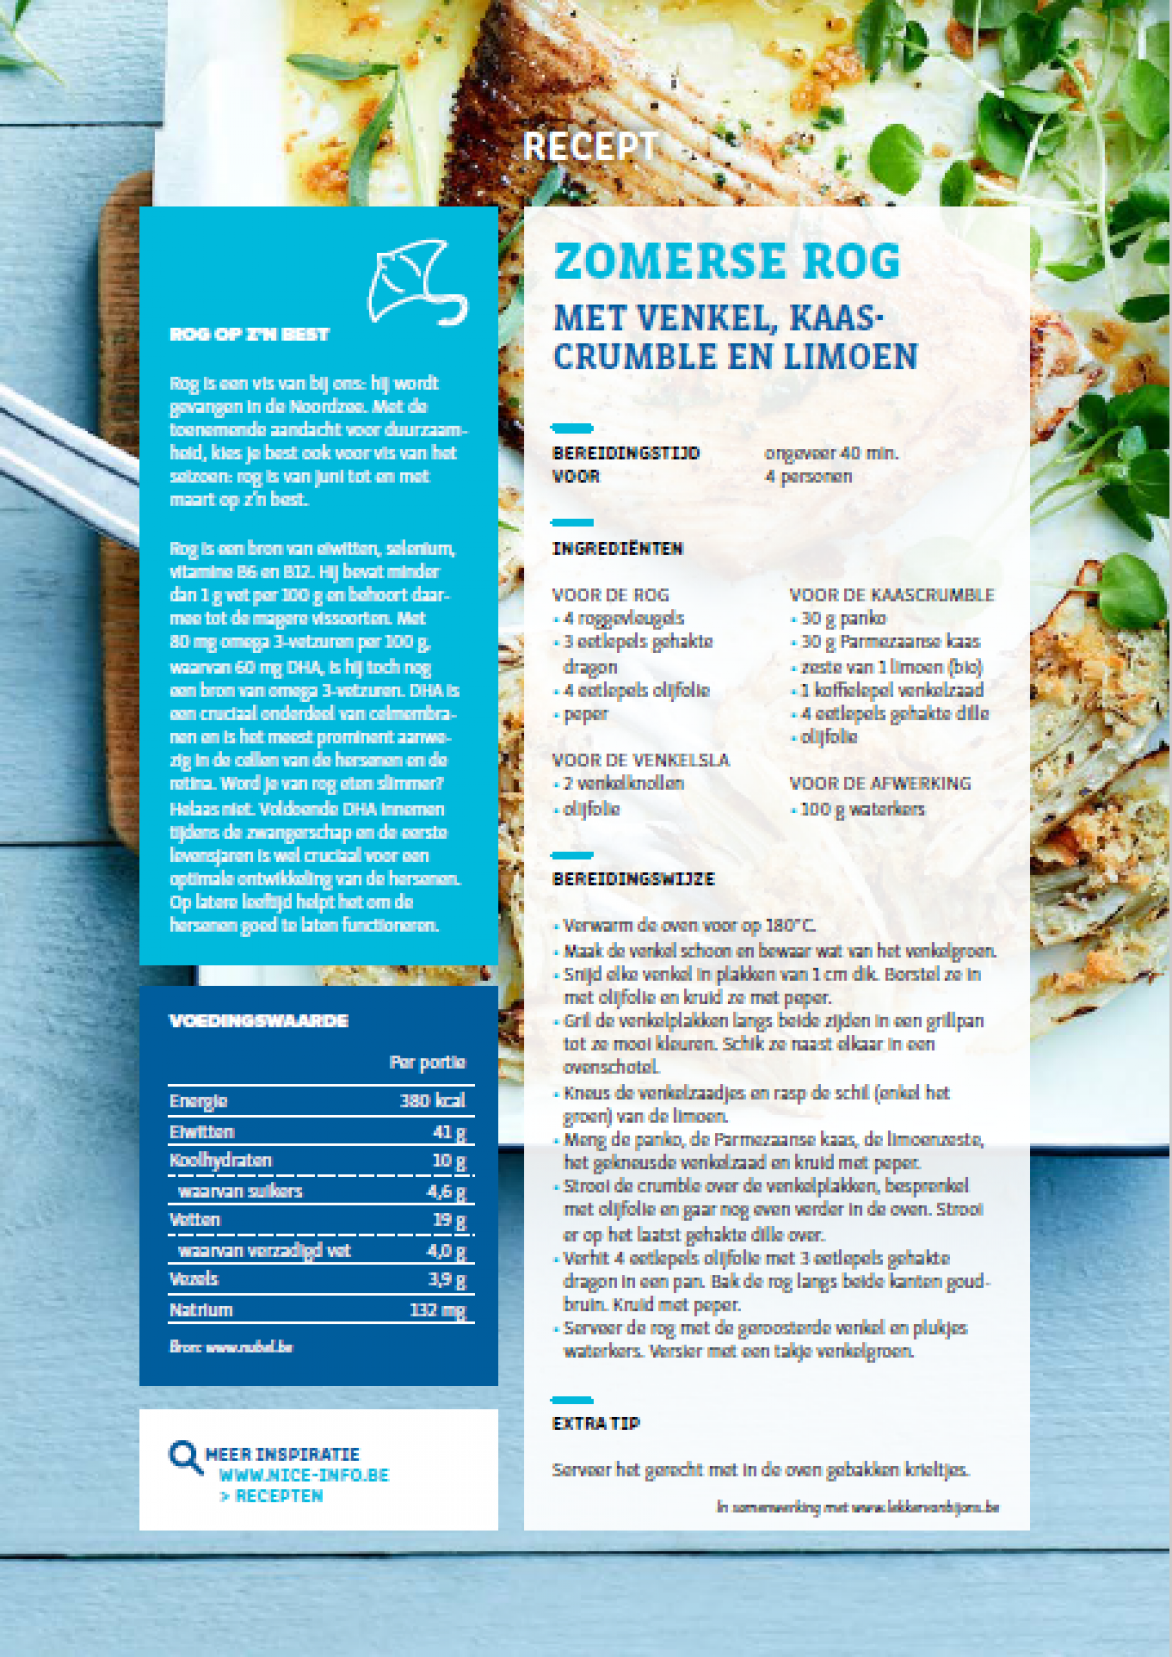 RECEPTFICHE - Zomerse rog